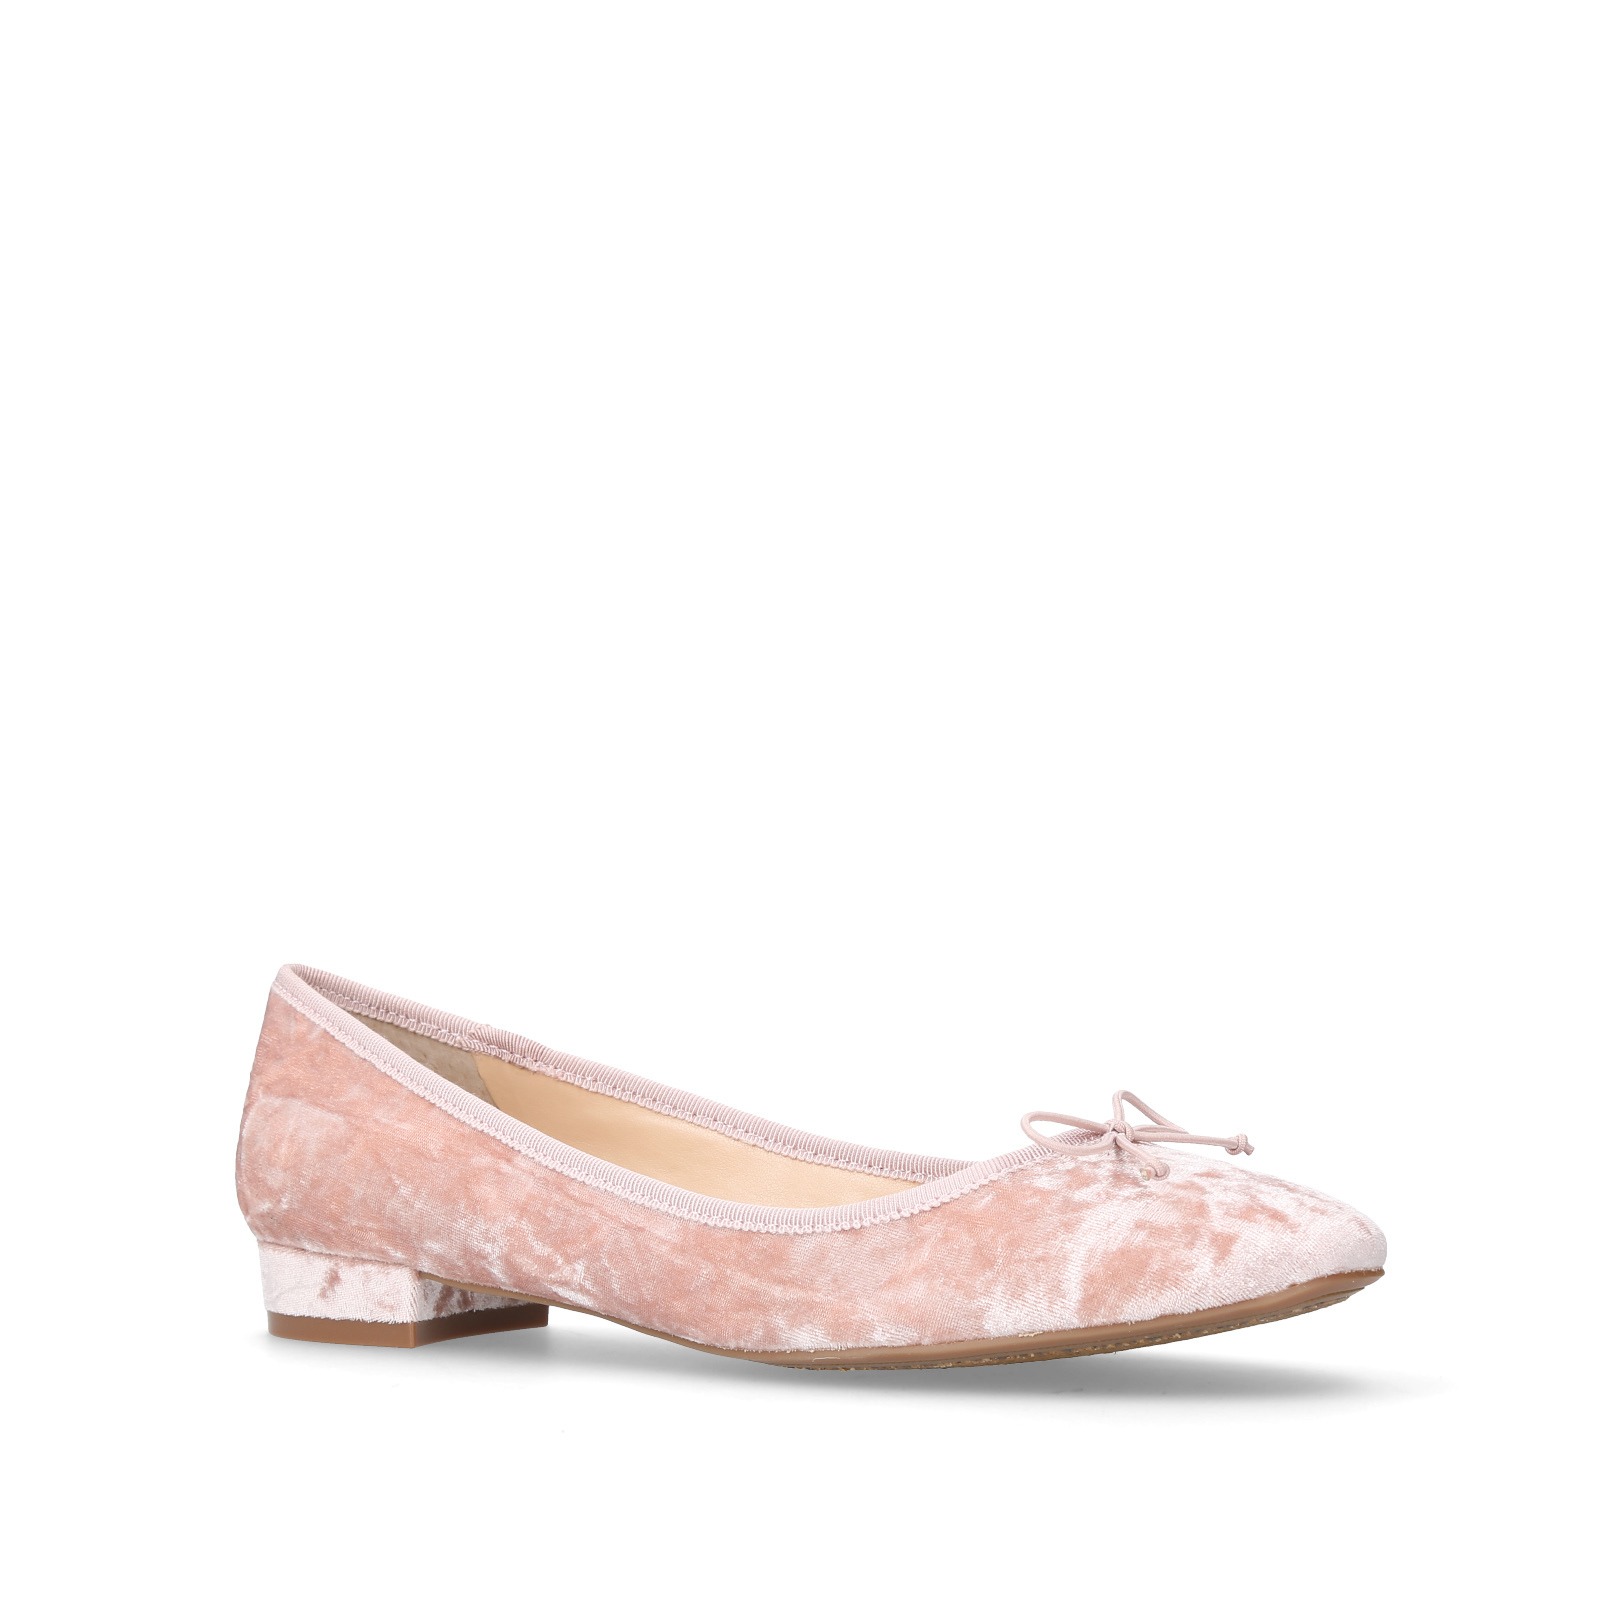 Adema Pale Pink Flat Ballerina Shoes By Vince Camuto 1snYisXn